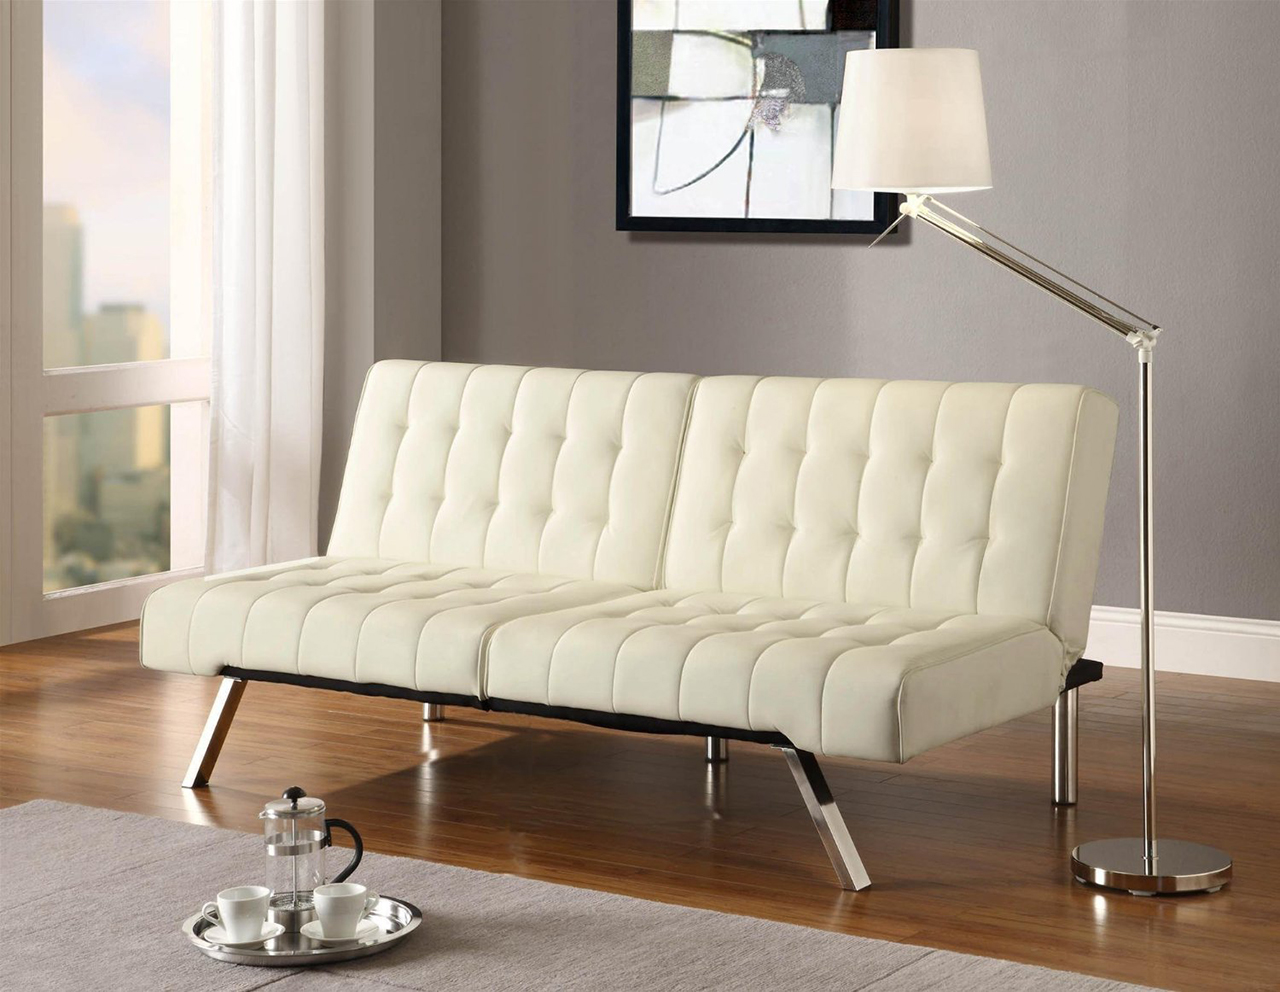 dhm convertible sofa in vanilla - Best Sofas In The World